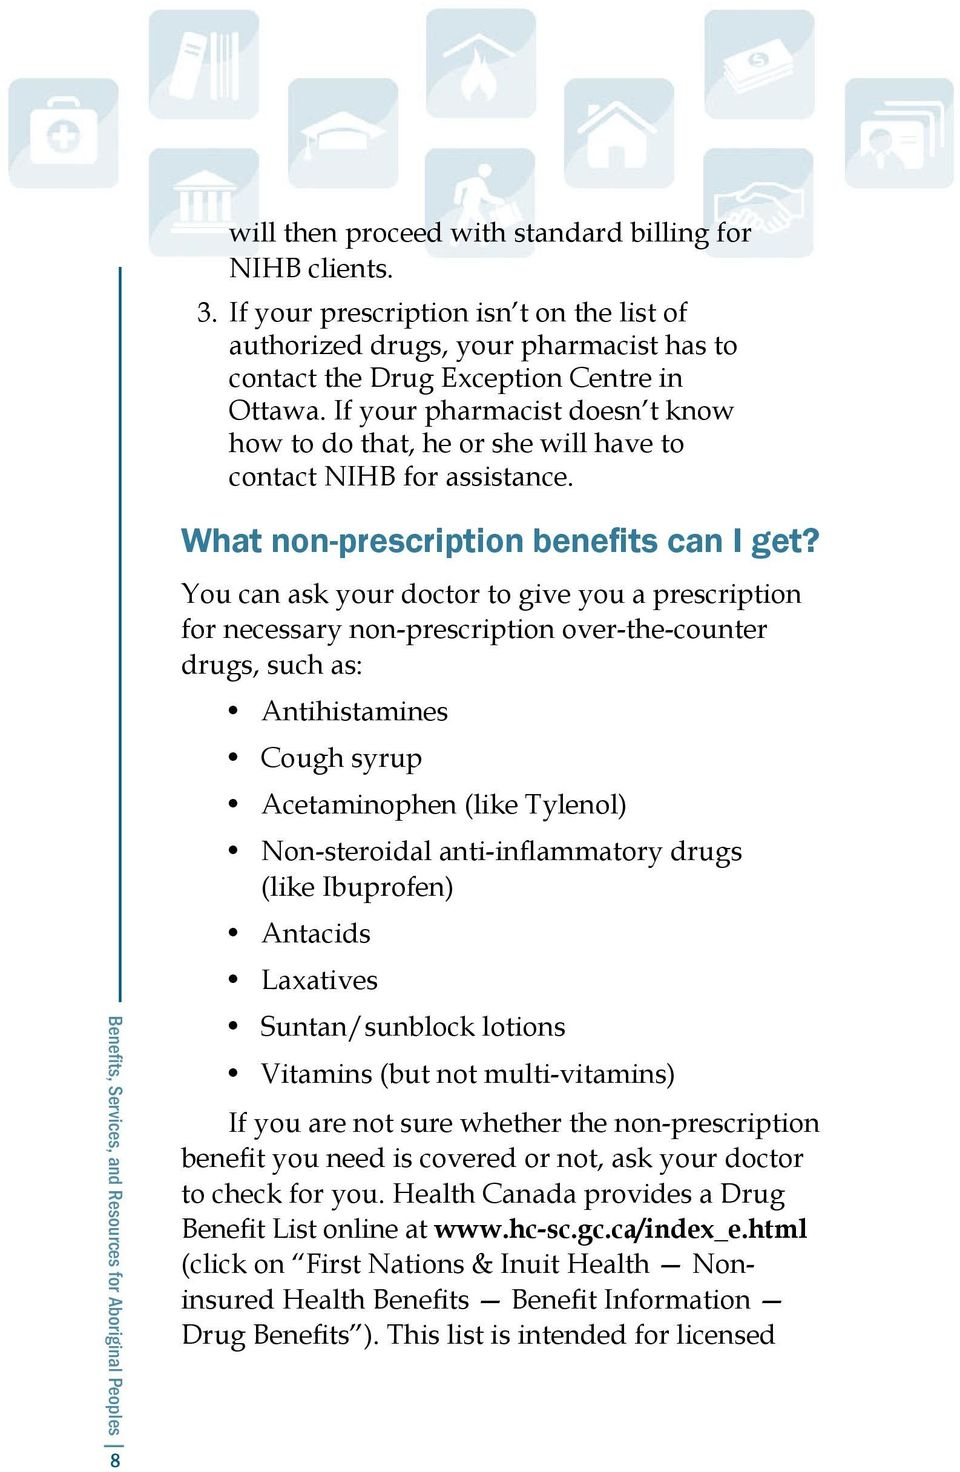 You can ask your doctor to give you a prescription for necessary non-prescription over-the-counter drugs, such as: Antihistamines Cough syrup Acetaminophen (like Tylenol) Non-steroidal